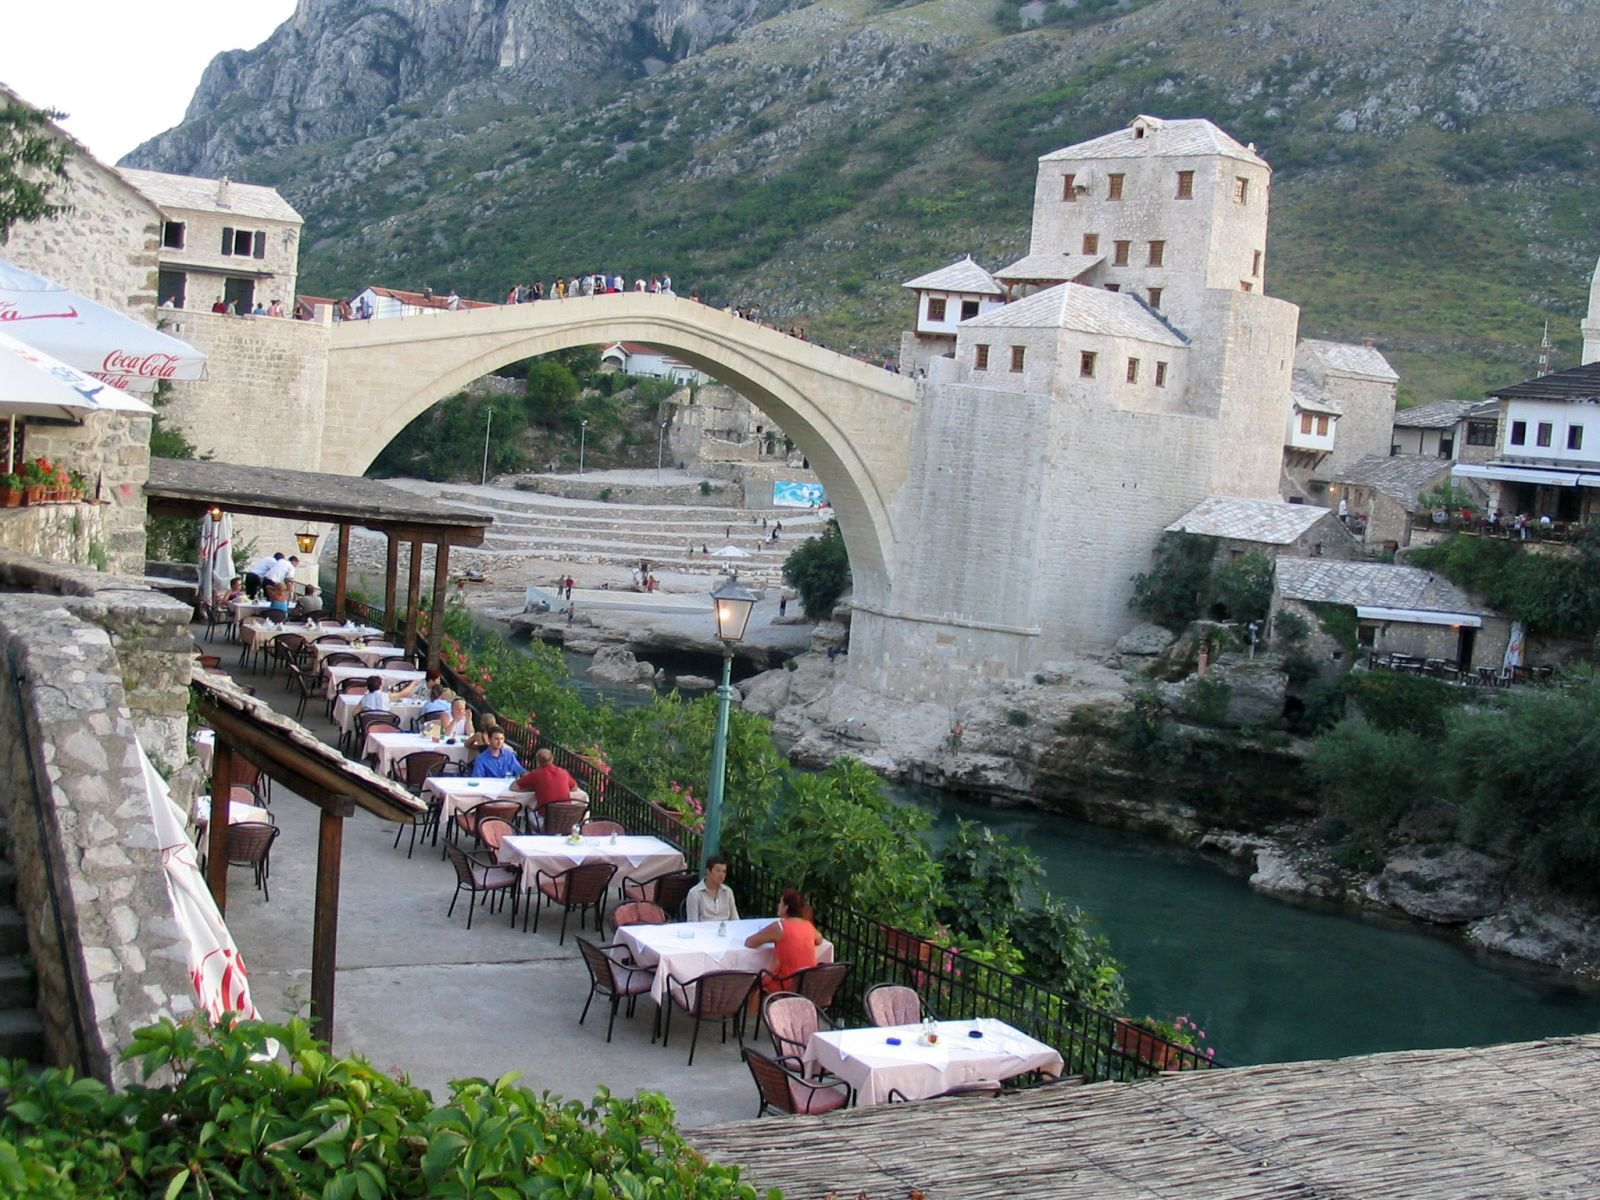 -images-excursions-mostar-private-tour-mostar-private-tour-006.jpg